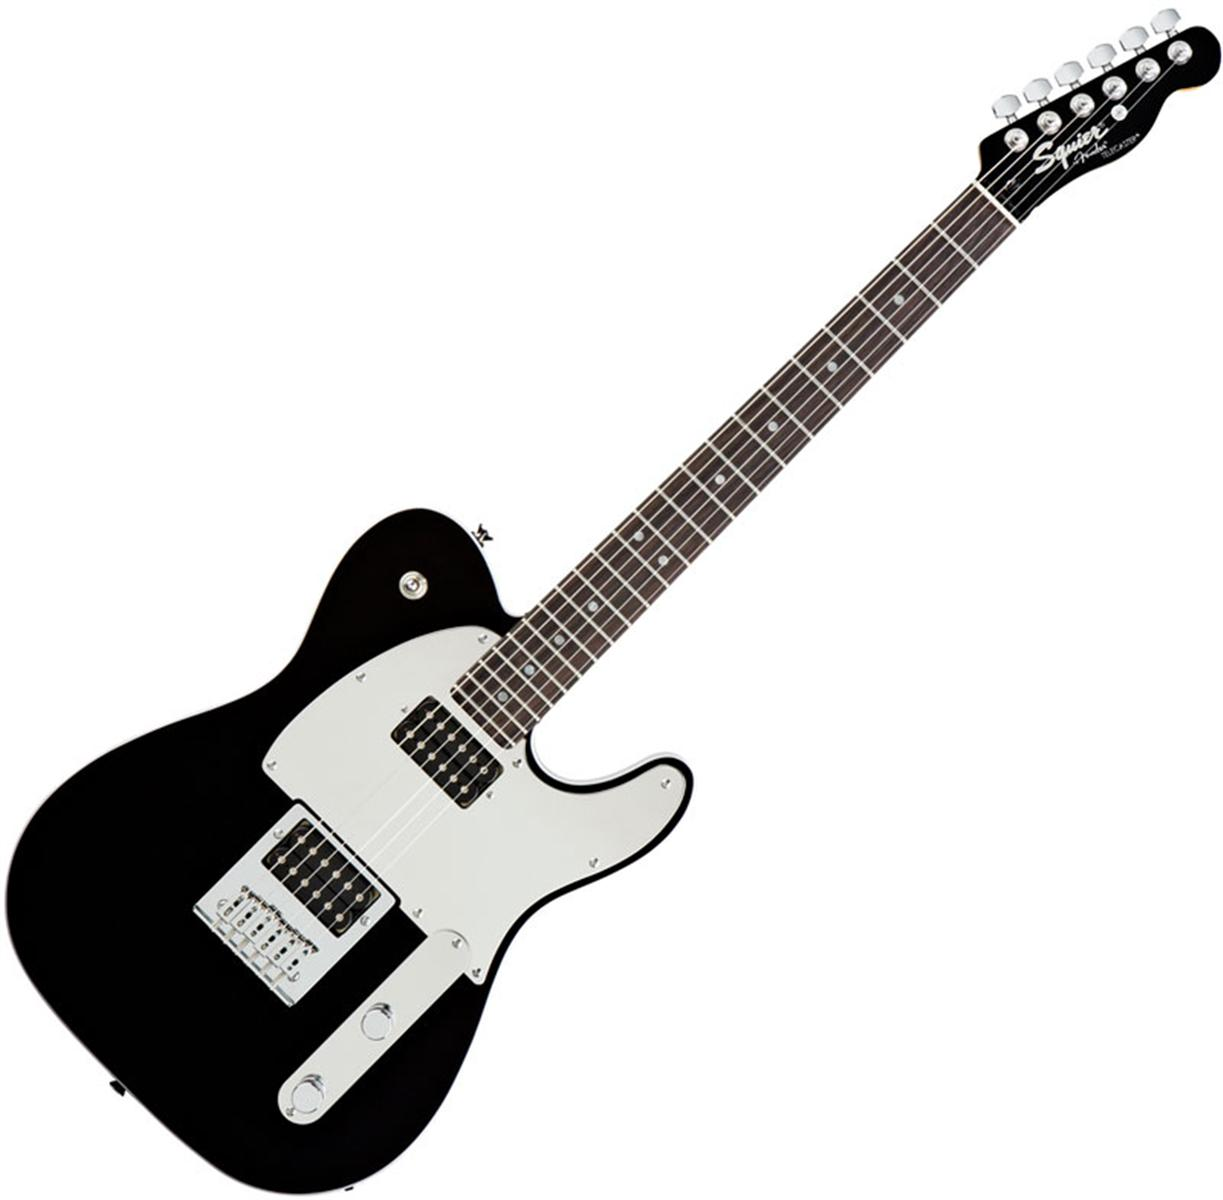 1223x1200 Best Guitar Clip Art